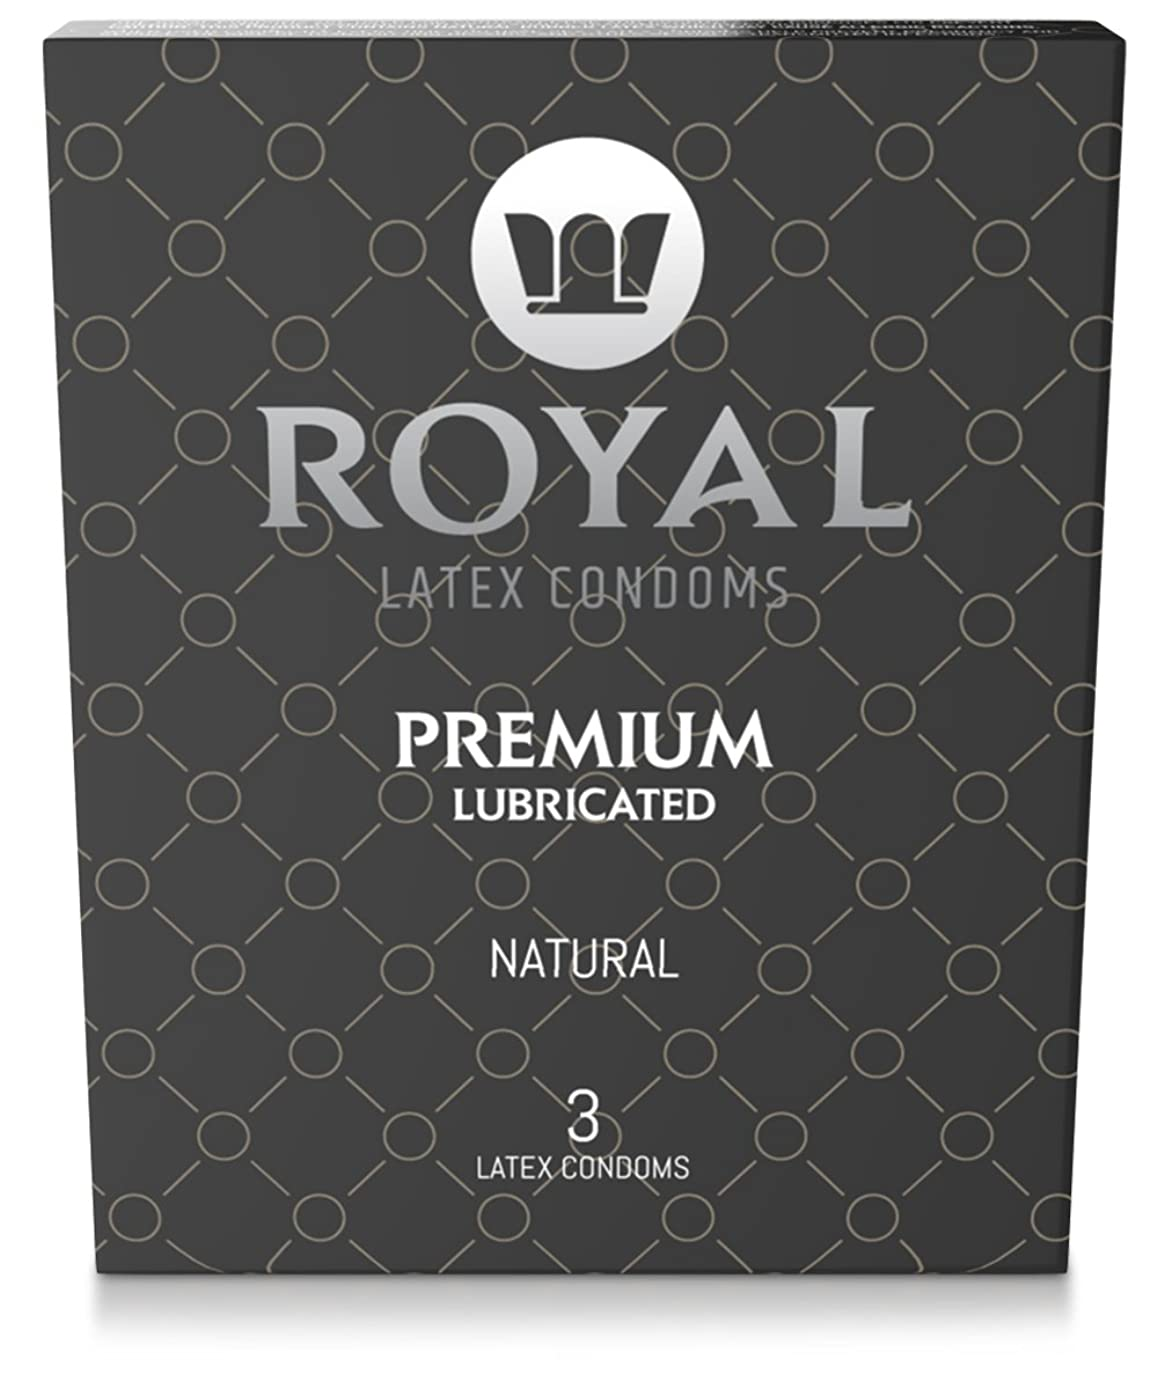 Royal Ultra Thin Condoms - Premium Lubricated, All Natural, Organic, Vegan, High Quality Non-Toxic, Cruelty Free, Odor Free Latex for Long Lasting Extended Pleasure and Performance, 3 Pack